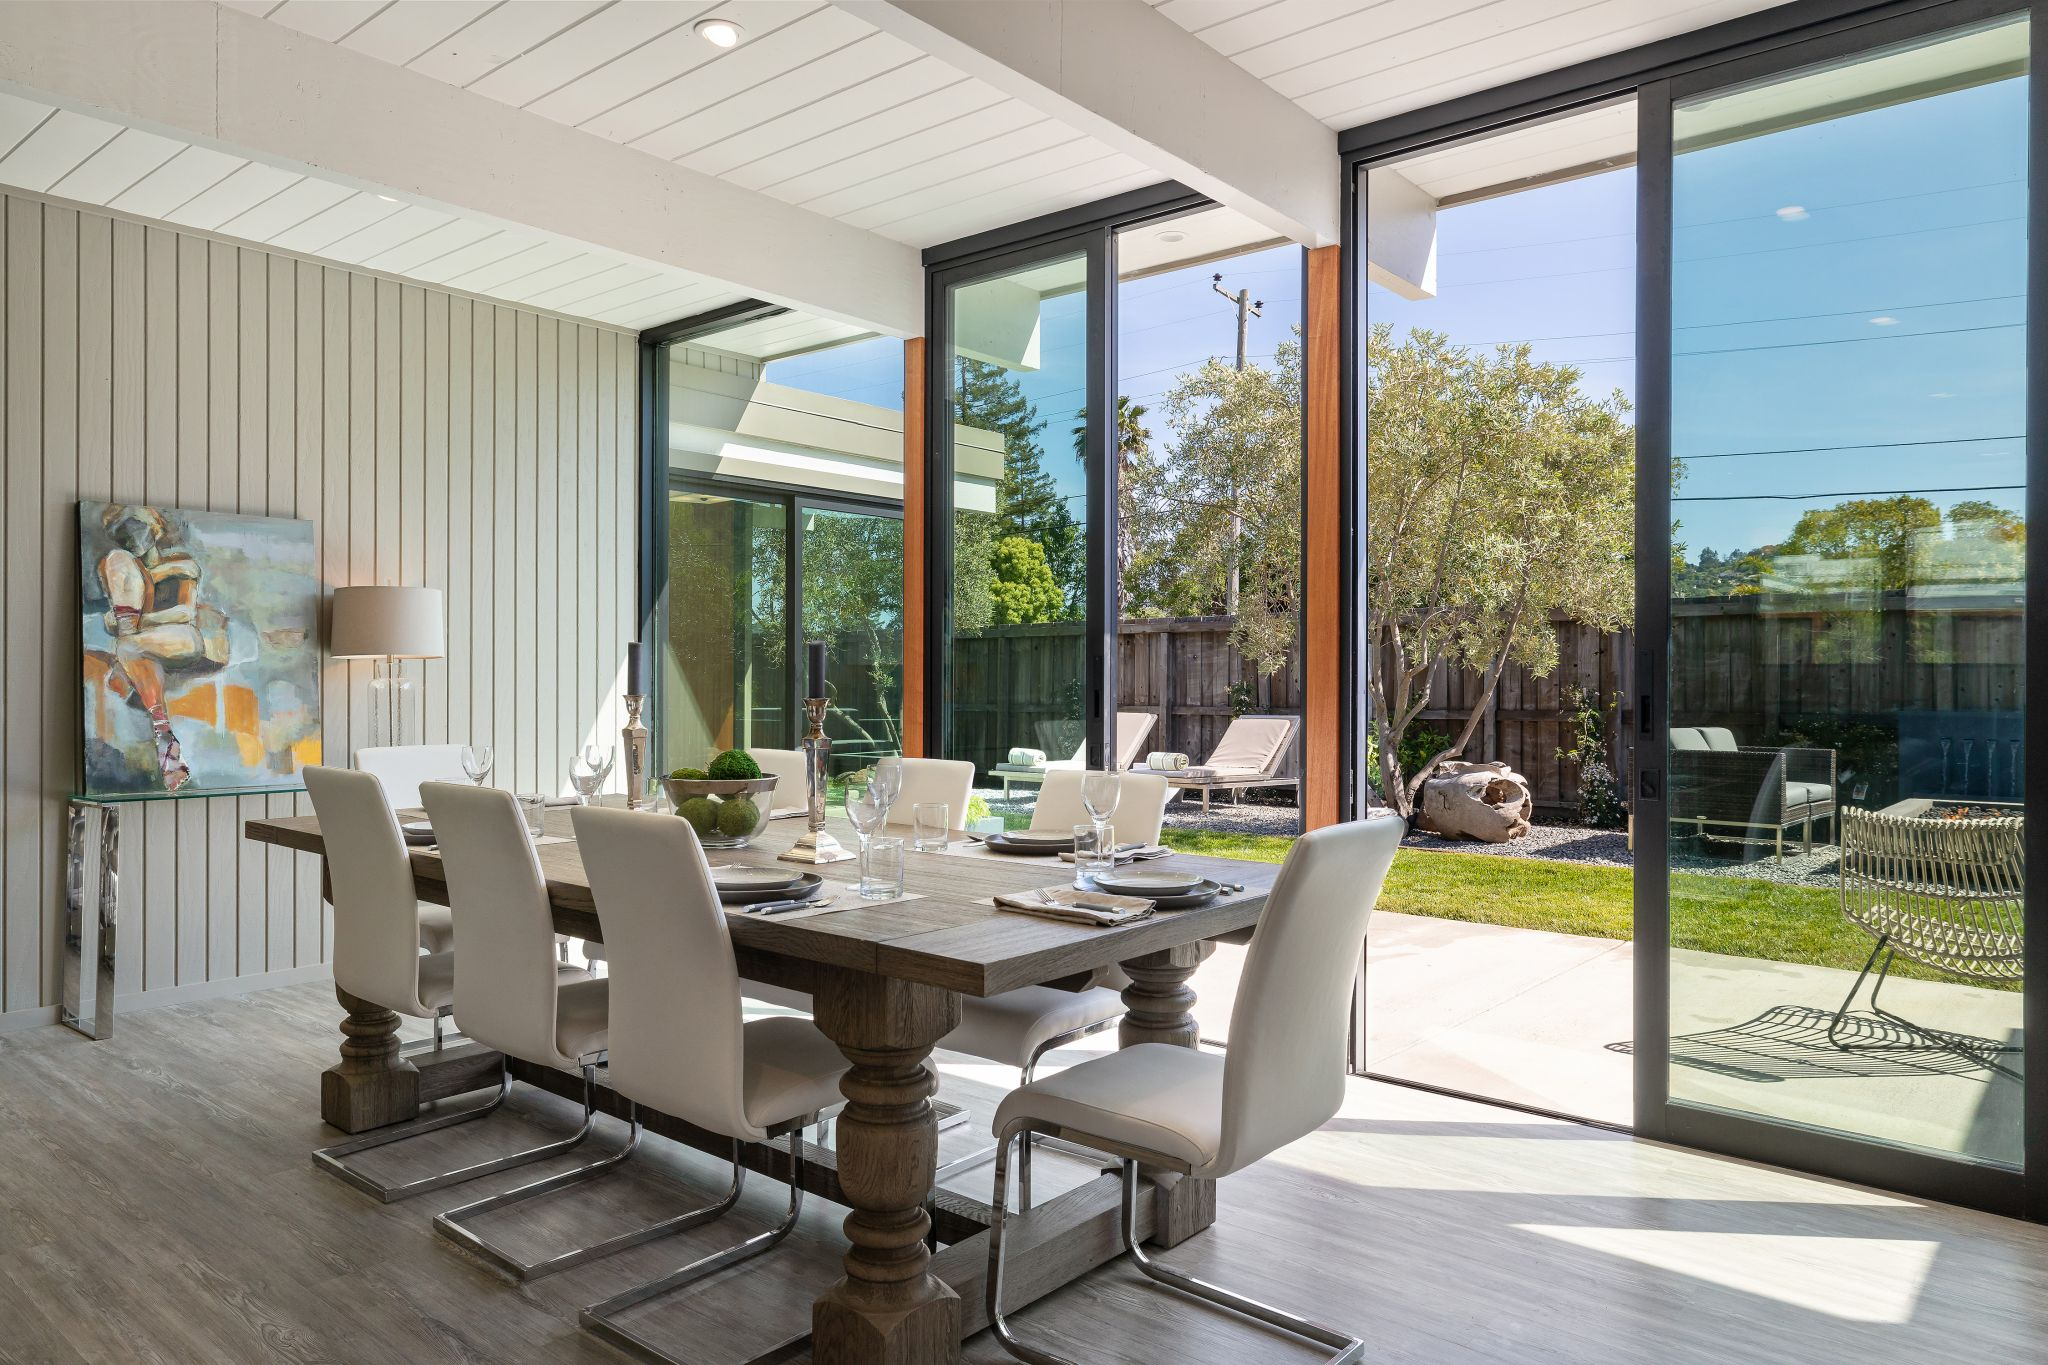 The dining area is an entertaining space newly added to the home, but it fits seamlessly with the original portion and leads out to the large backyard.